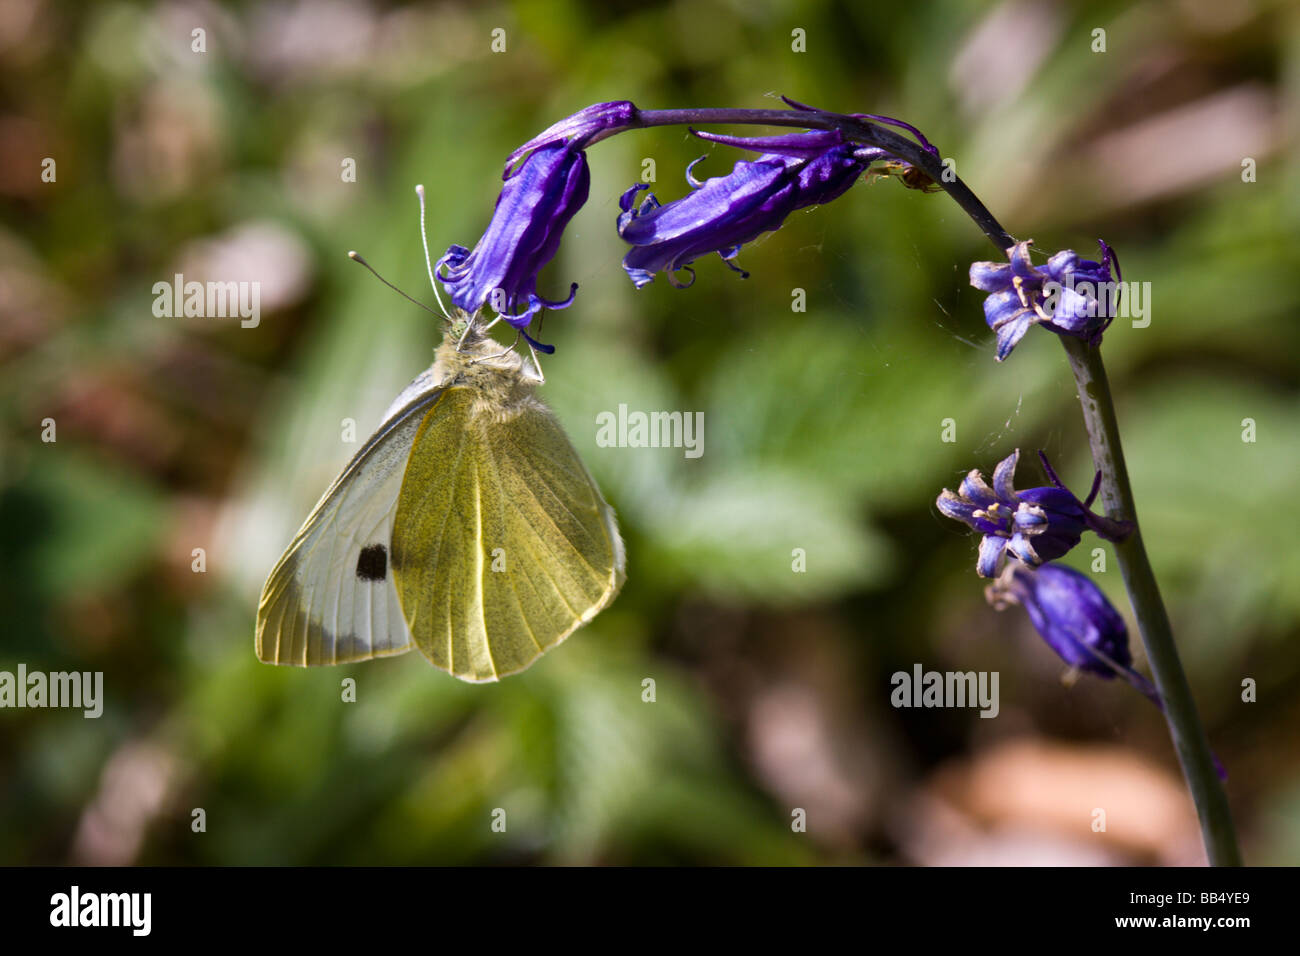 Large White Butterfly on Bluebell - Stock Image